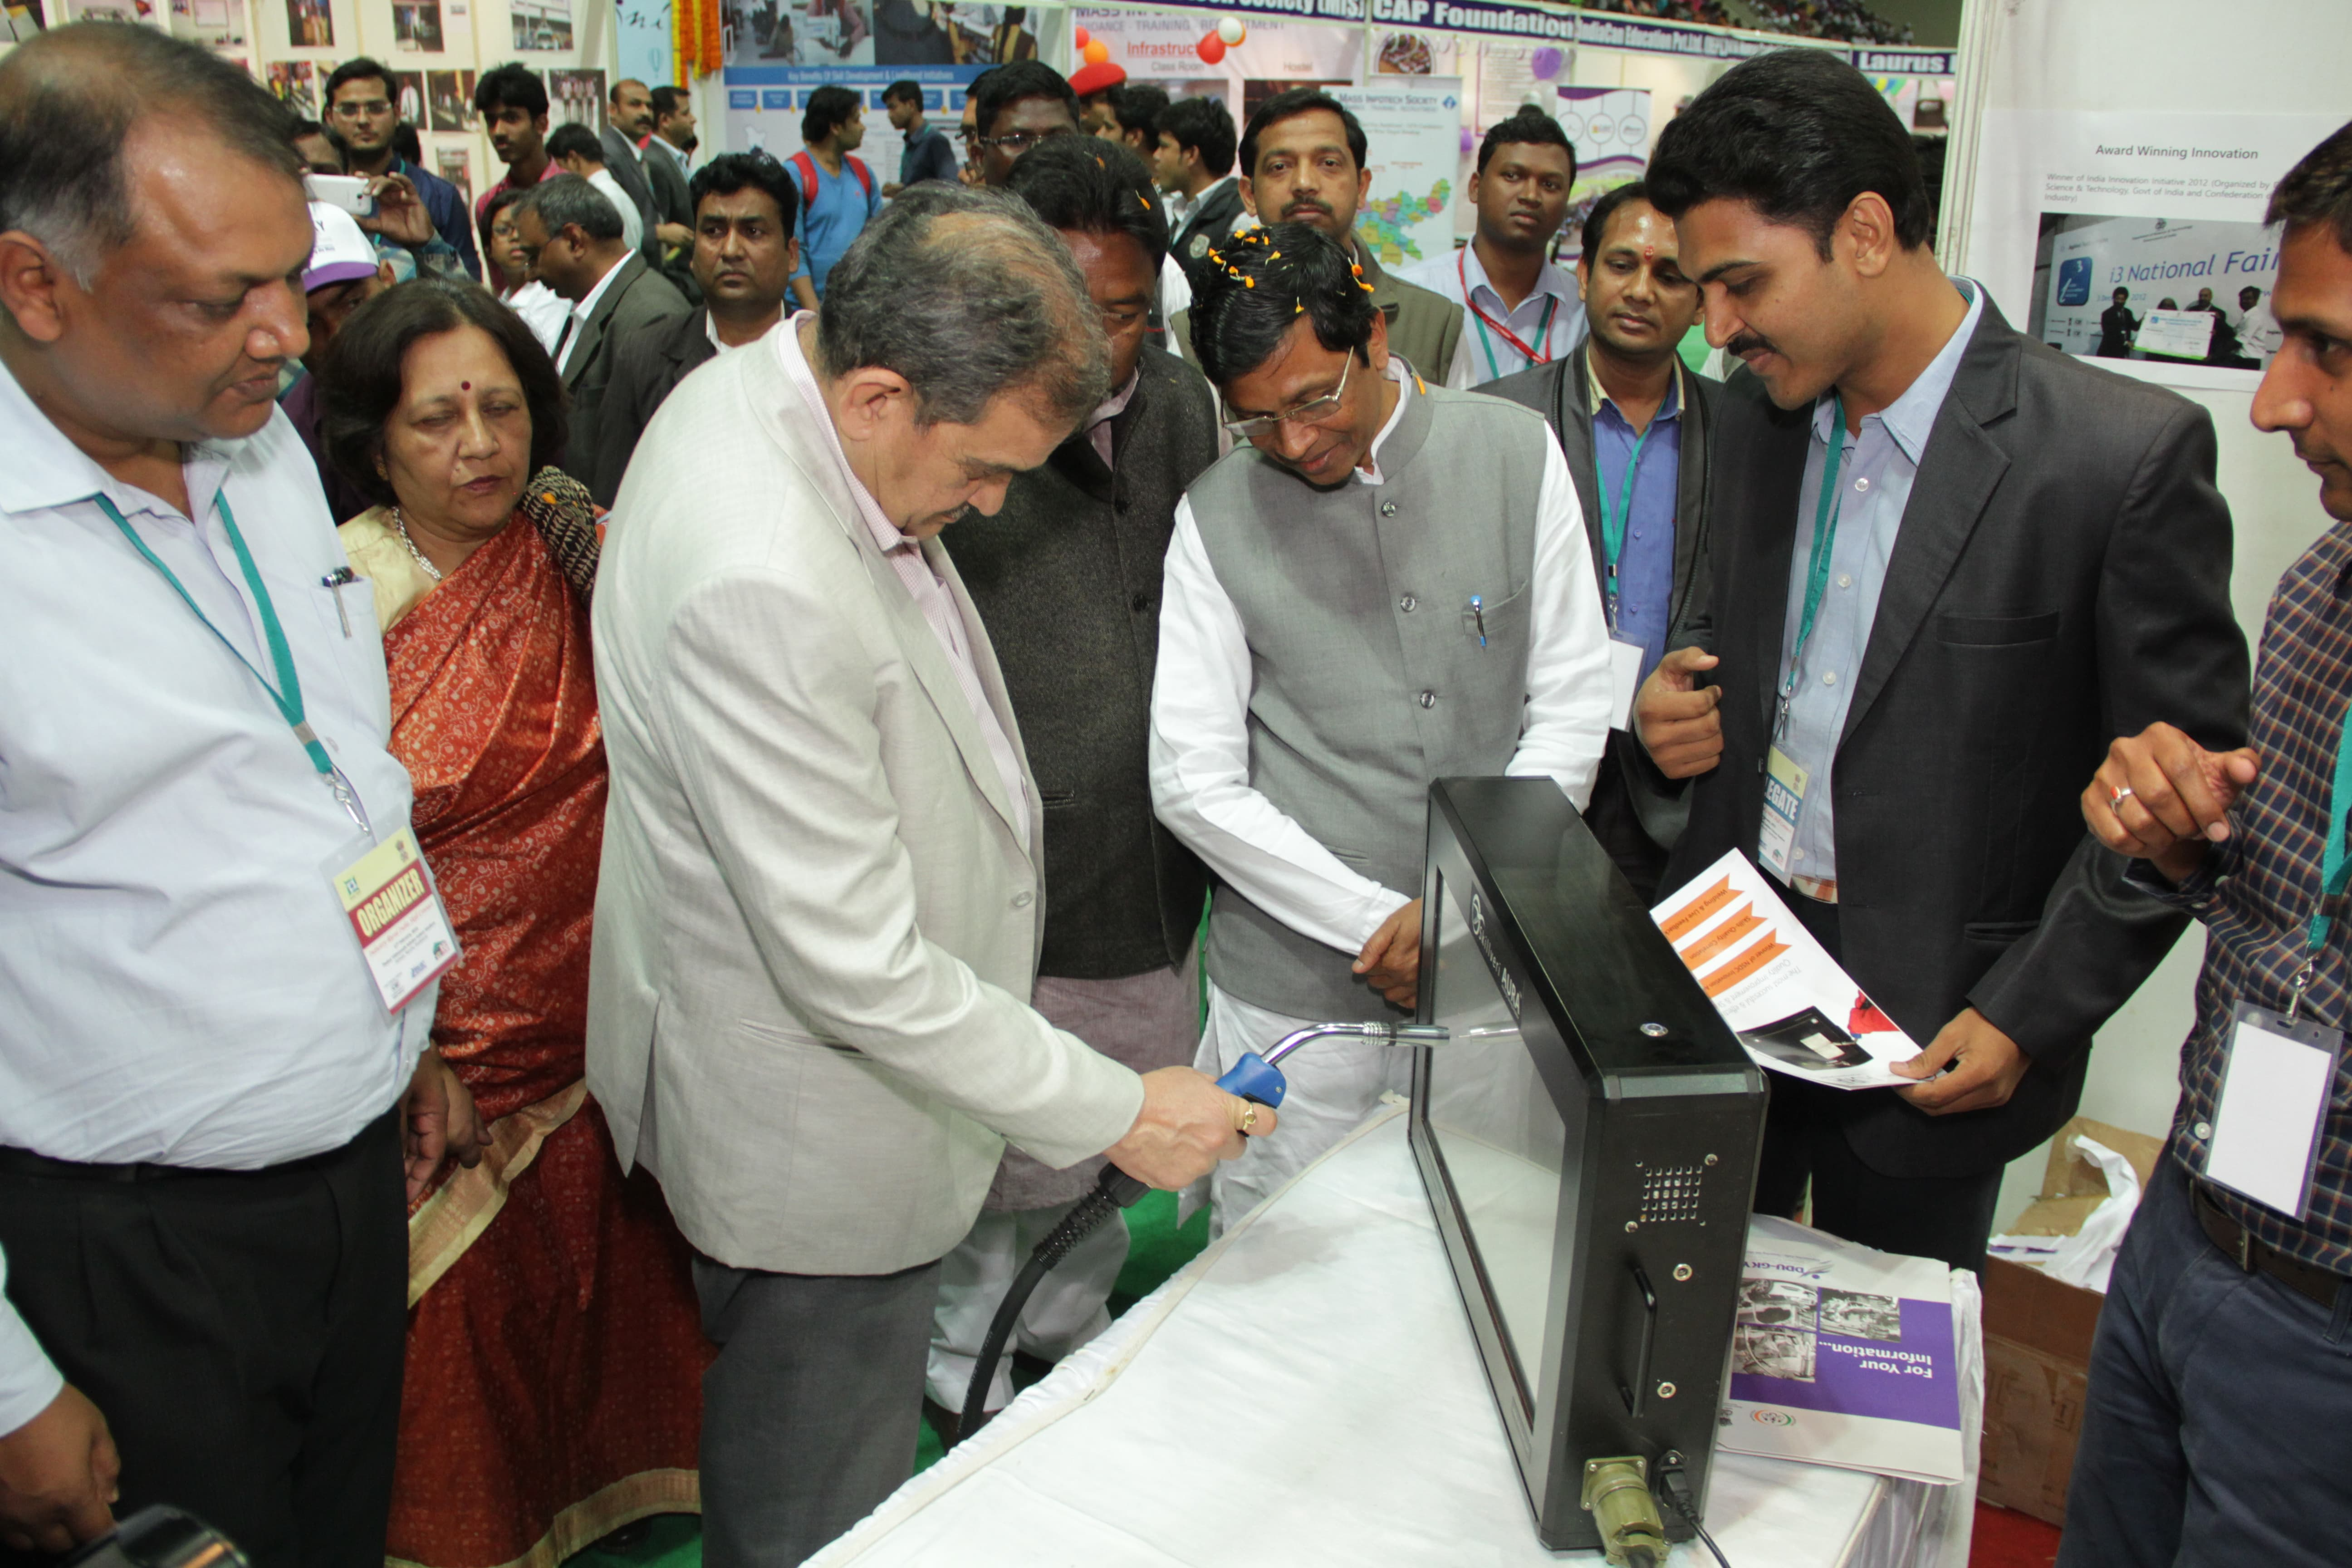 Visit to stall by VIPs